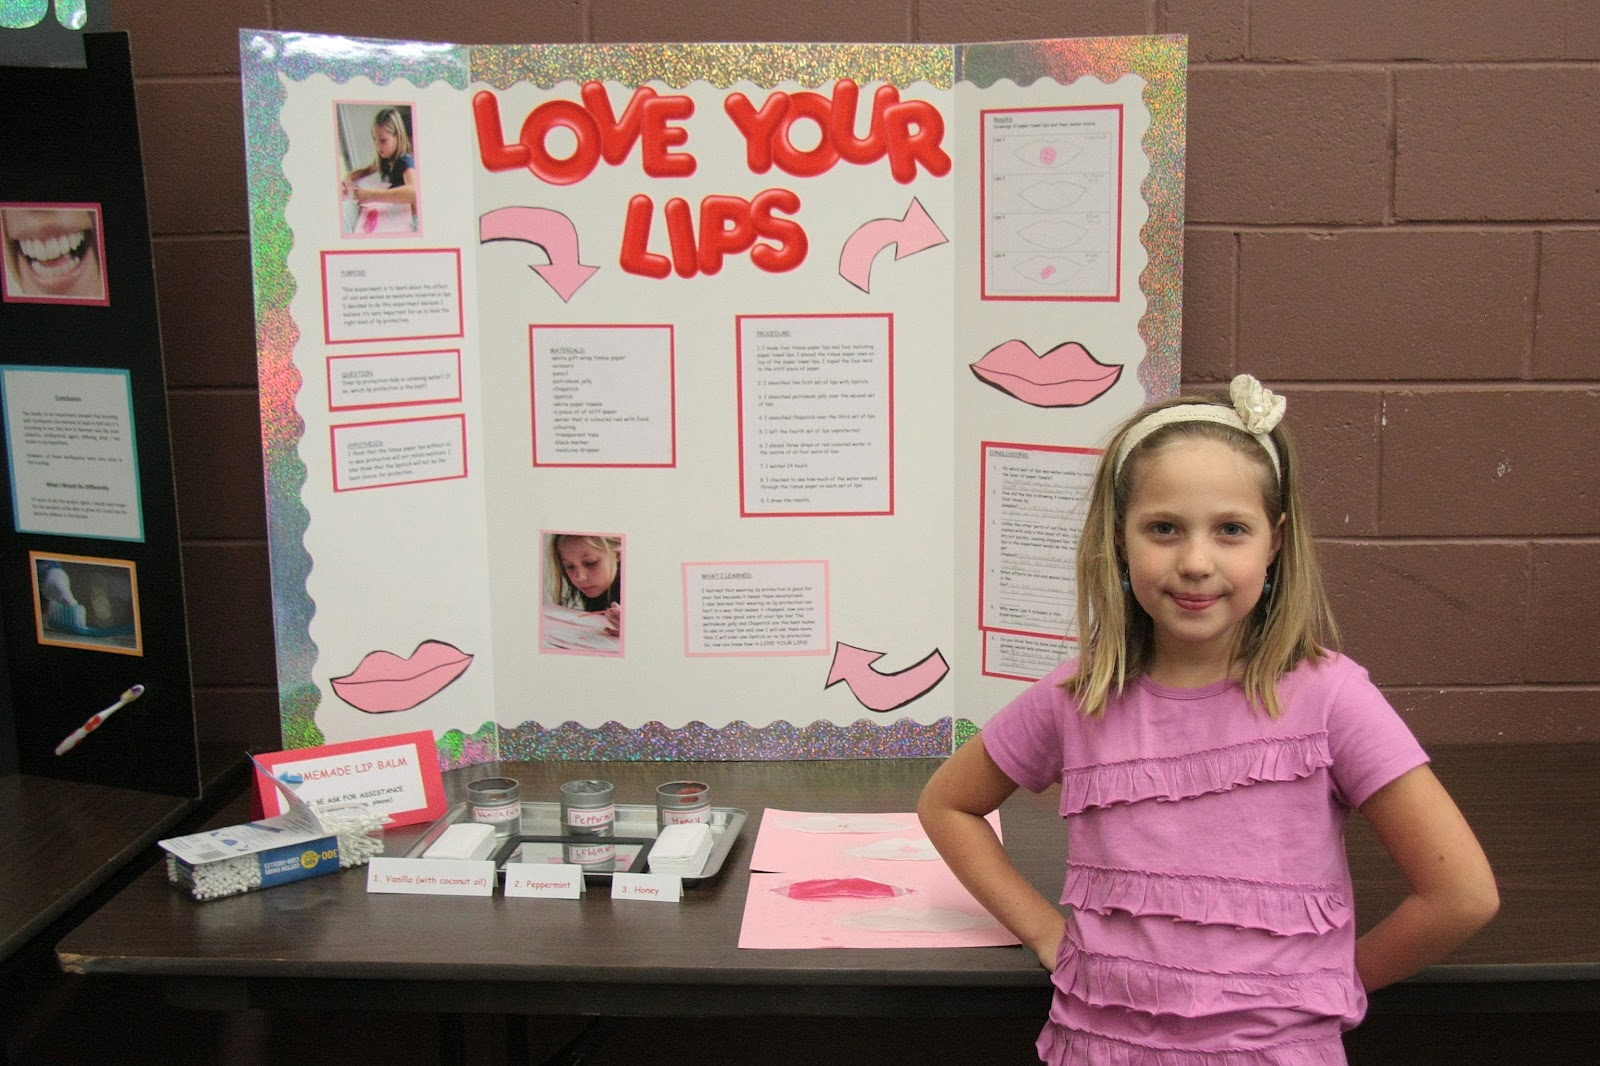 Molly discovered that it's good to protect your lips and that the best ...